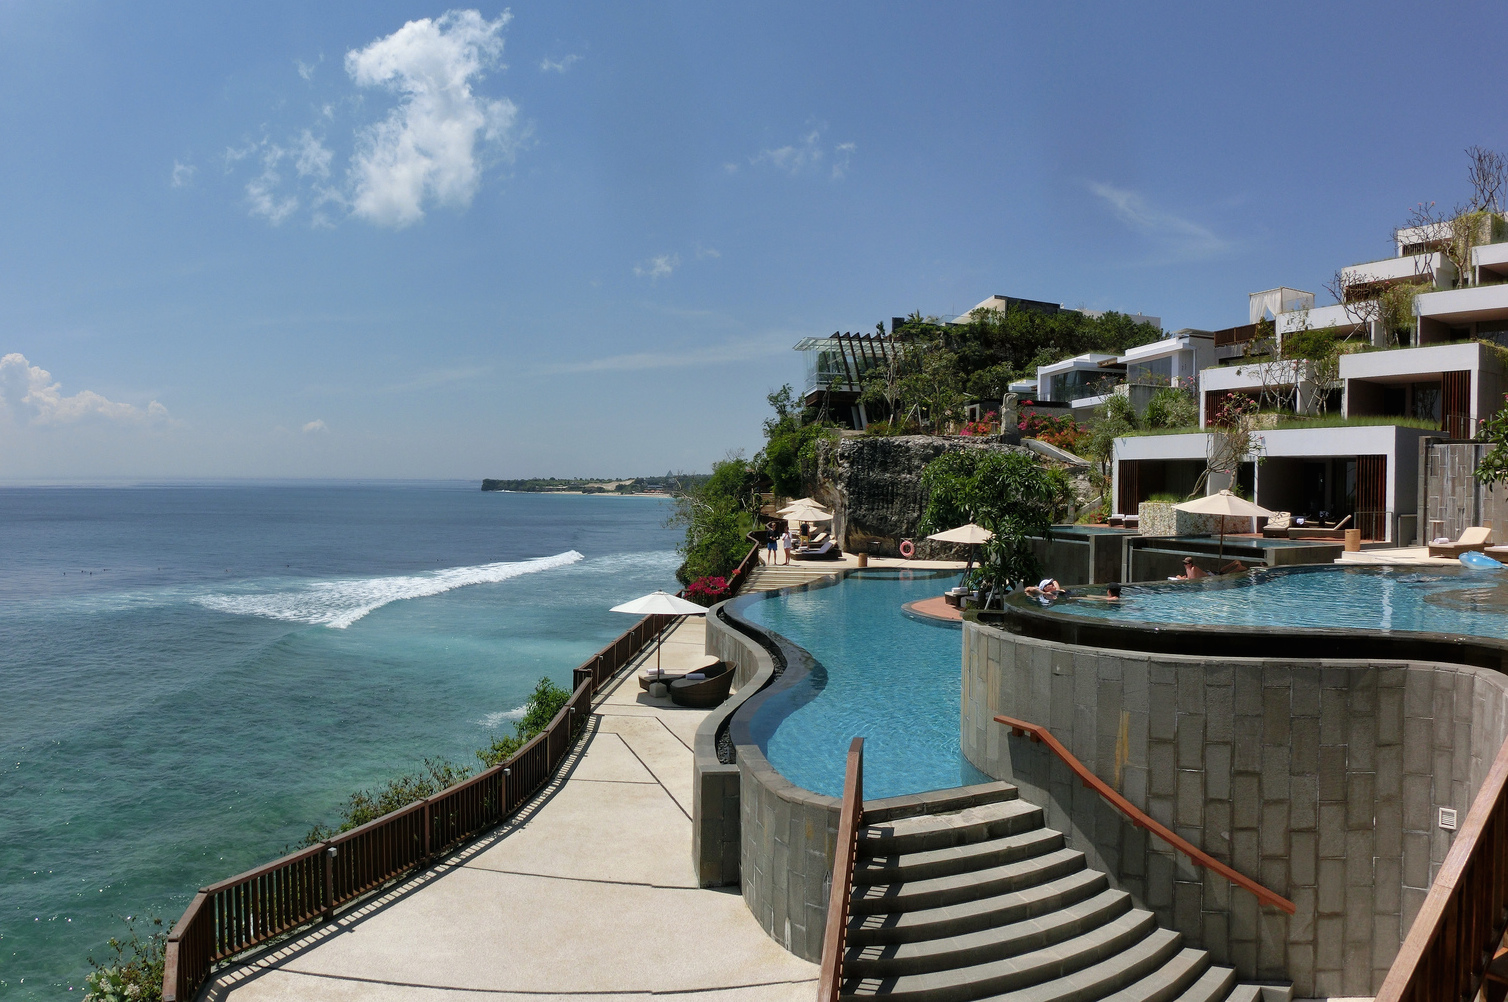 The Anantara Uluwatu Chapel